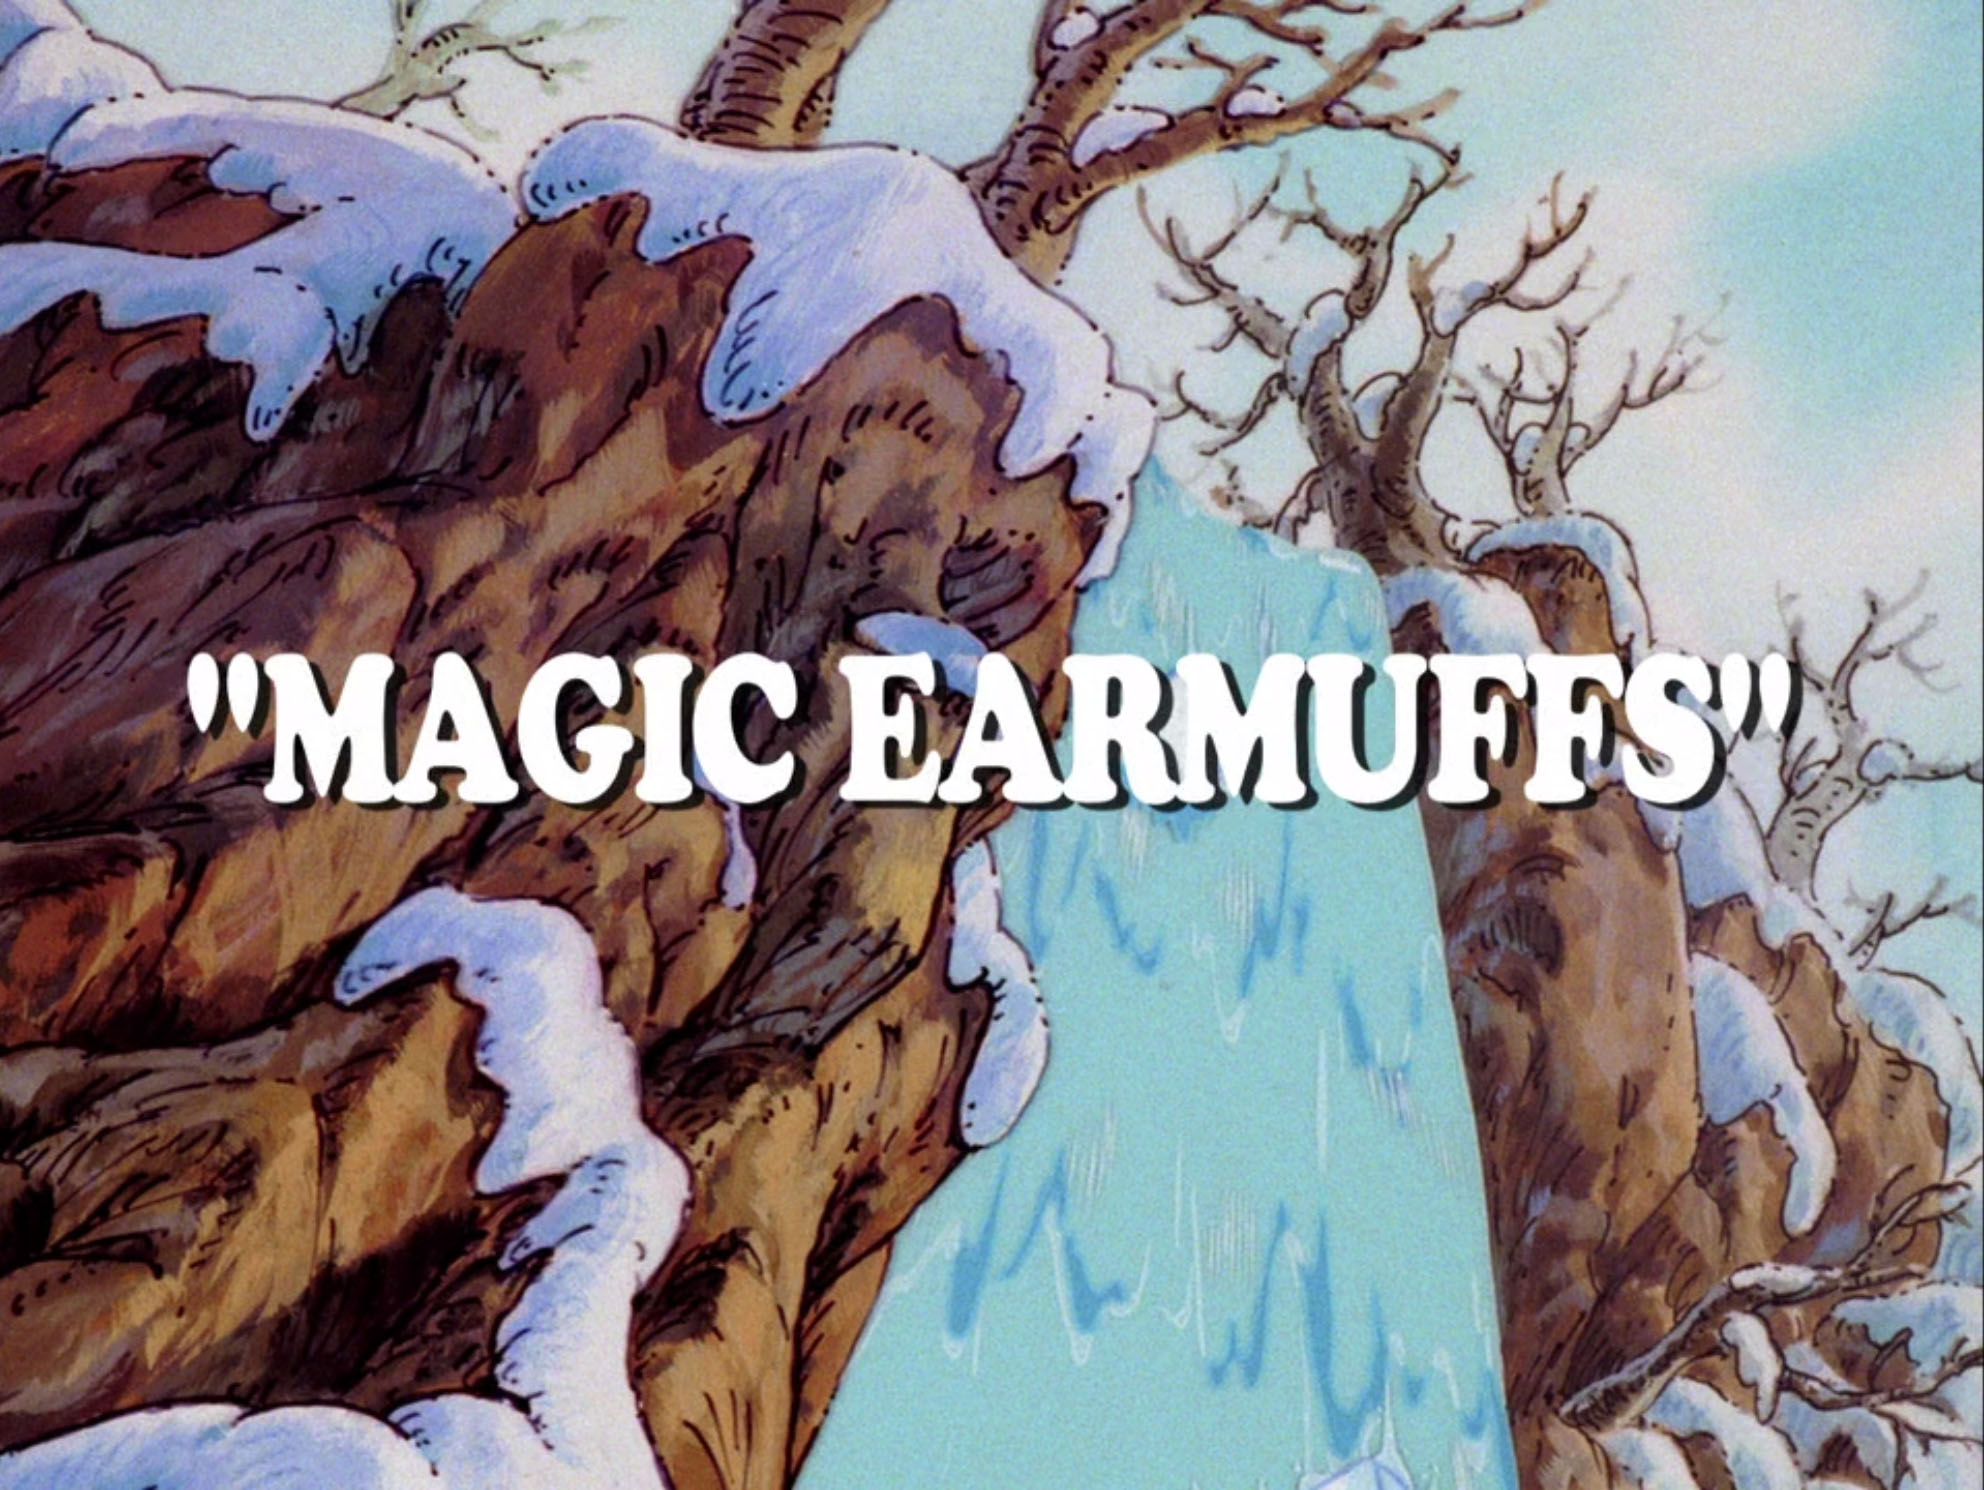 File:Magic Earmuffs.jpg